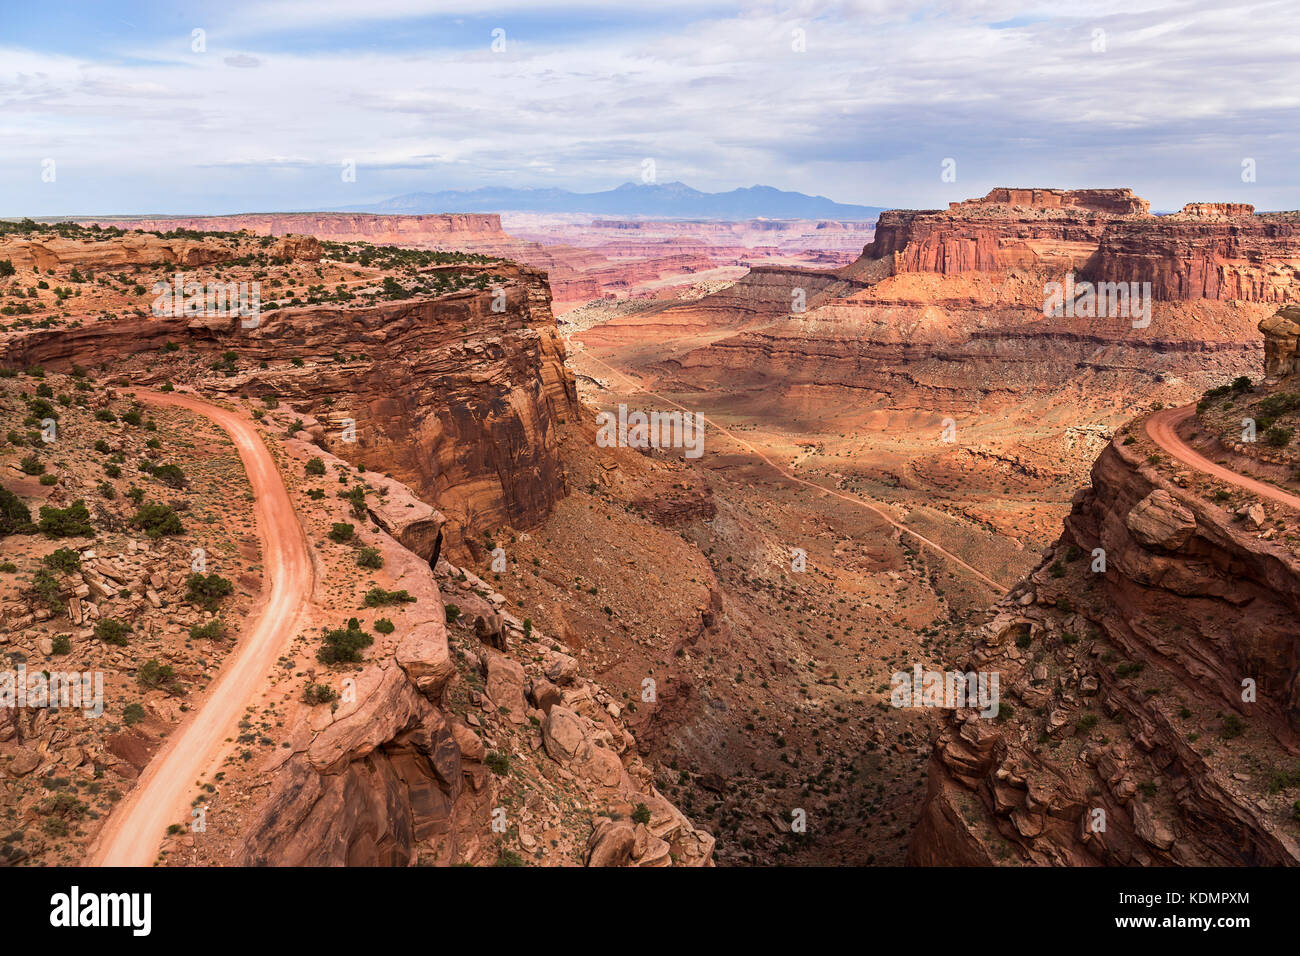 Shafer Trail road in Canyonlands national park, Moab Utah USA - Stock Image